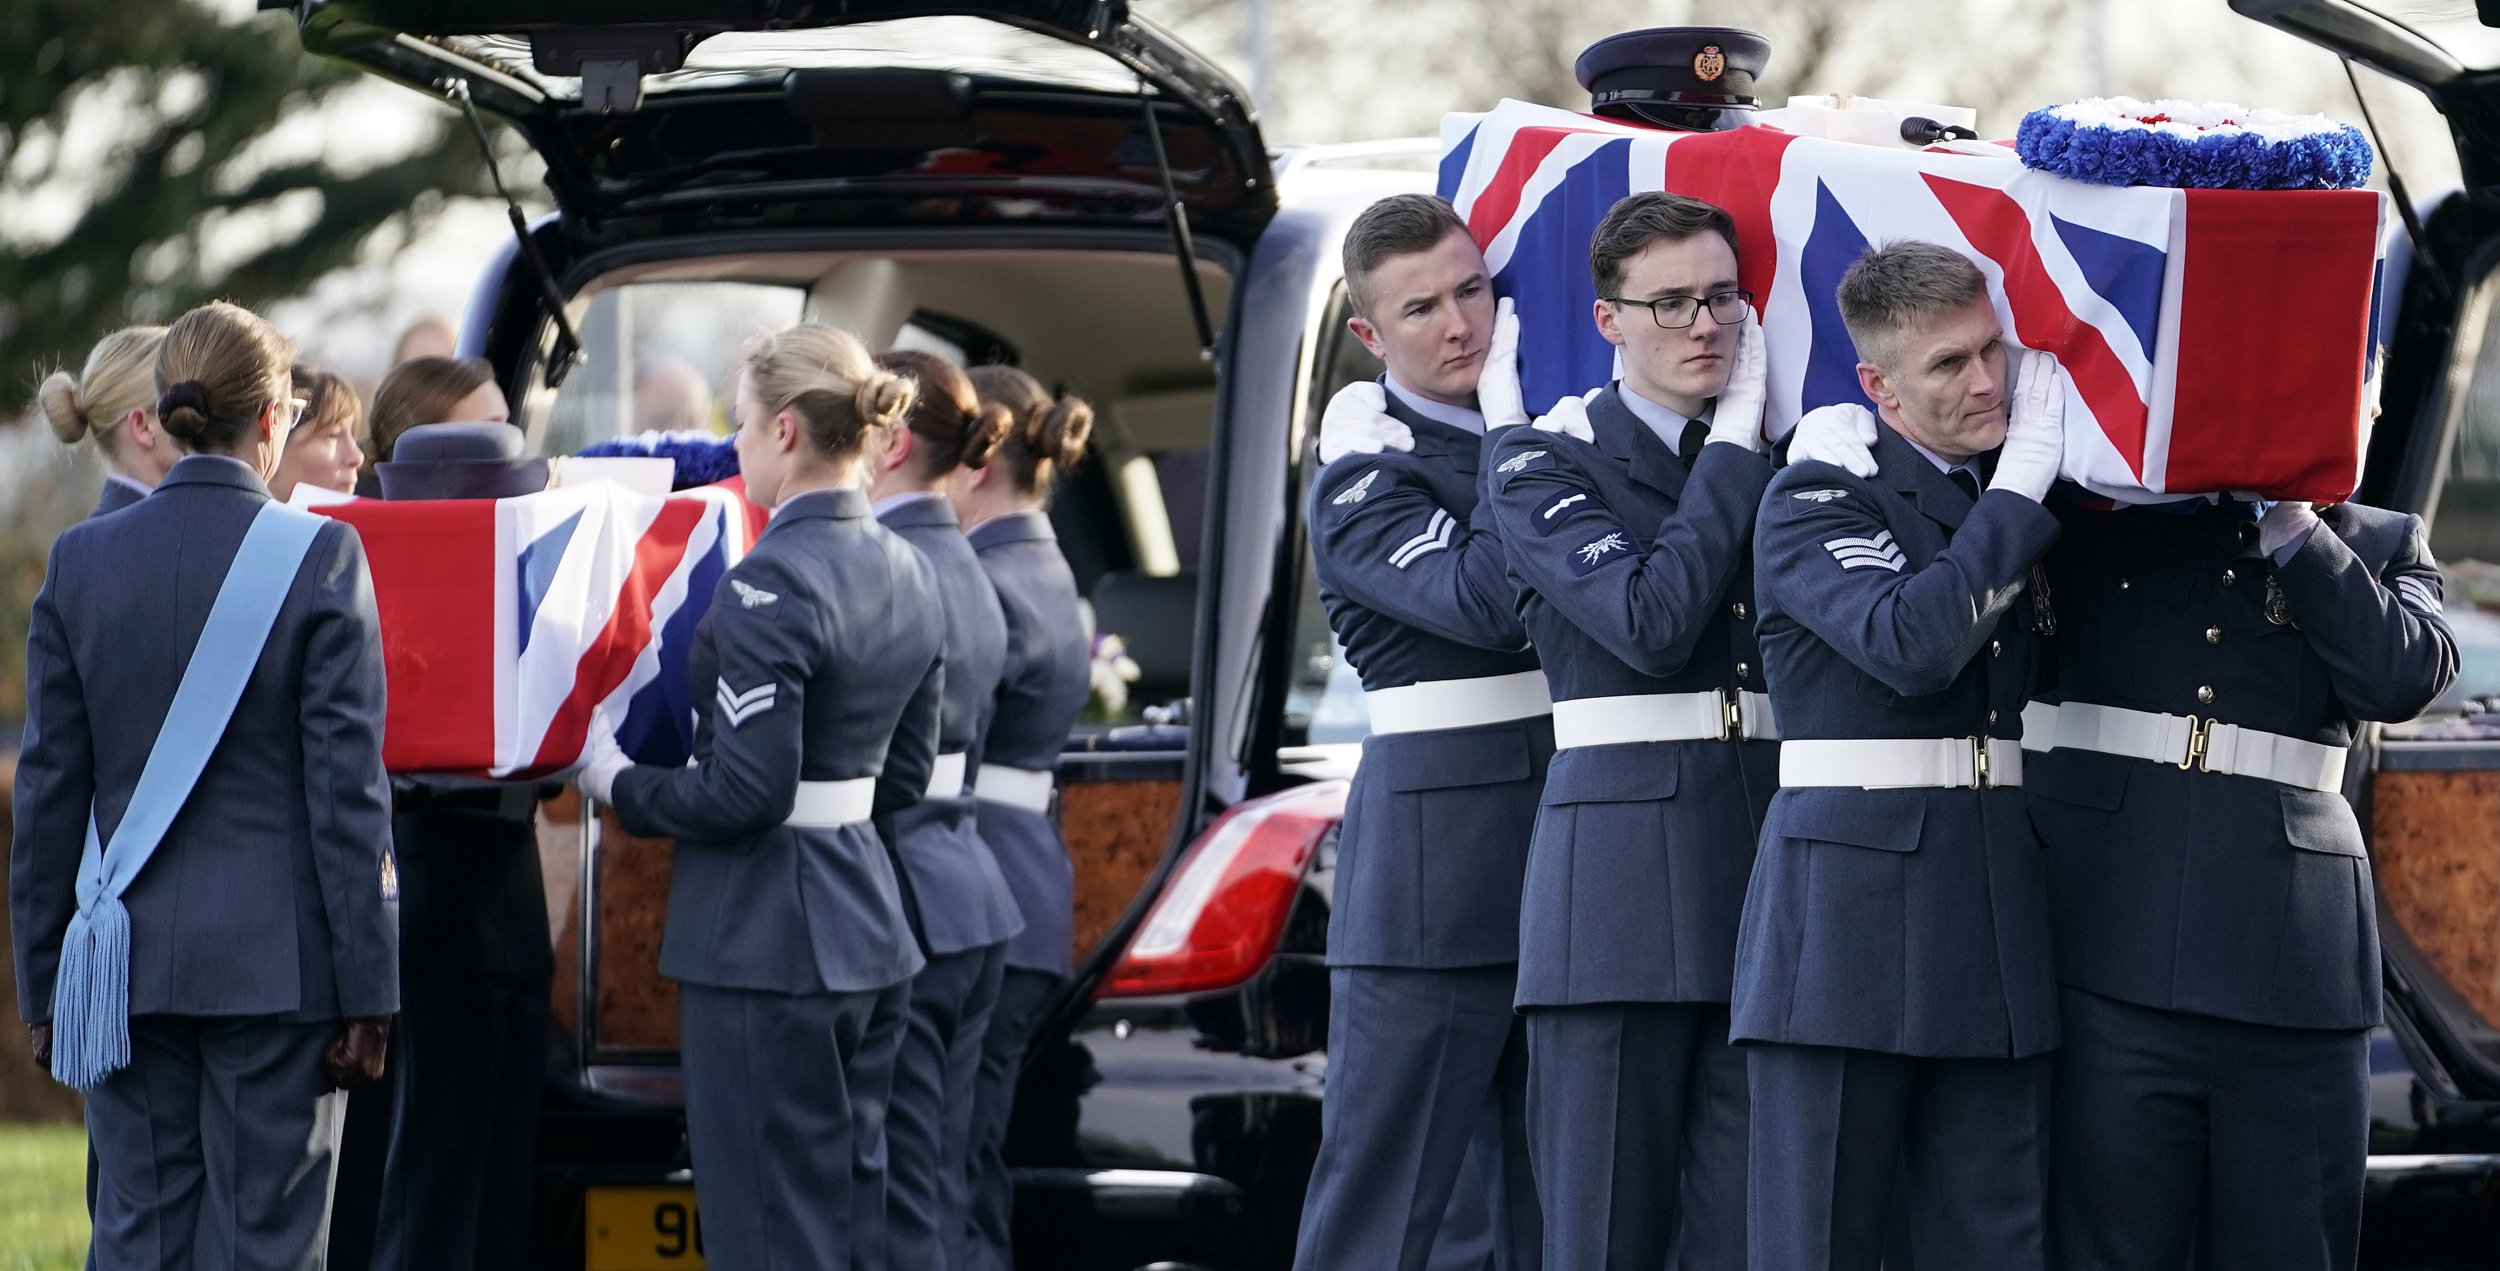 TELFORD, ENGLAND - JANUARY 22: Royal Air Force pall bearers from RAF Cosford carry the coffin of World War II veterans Victor Barnett (R) and his wife Edna during their funeral service at Telford Crematorium on January 22, 2019 in Telford, England. Victor Barnett, aged 101, was a Dambusters engineer and his wife Edna, 91, a member of the Womens Auxiliary Air Force and worked in air traffic control during World War II. The couple from Telford, Shropshire died within days of each other and had no surviving relatives to come to their funeral. A 'call to arms' by airmen at RAF Cosford saw hundreds of people arrive to pay their respects to the couple. (Photo by Christopher Furlong/Getty Images)